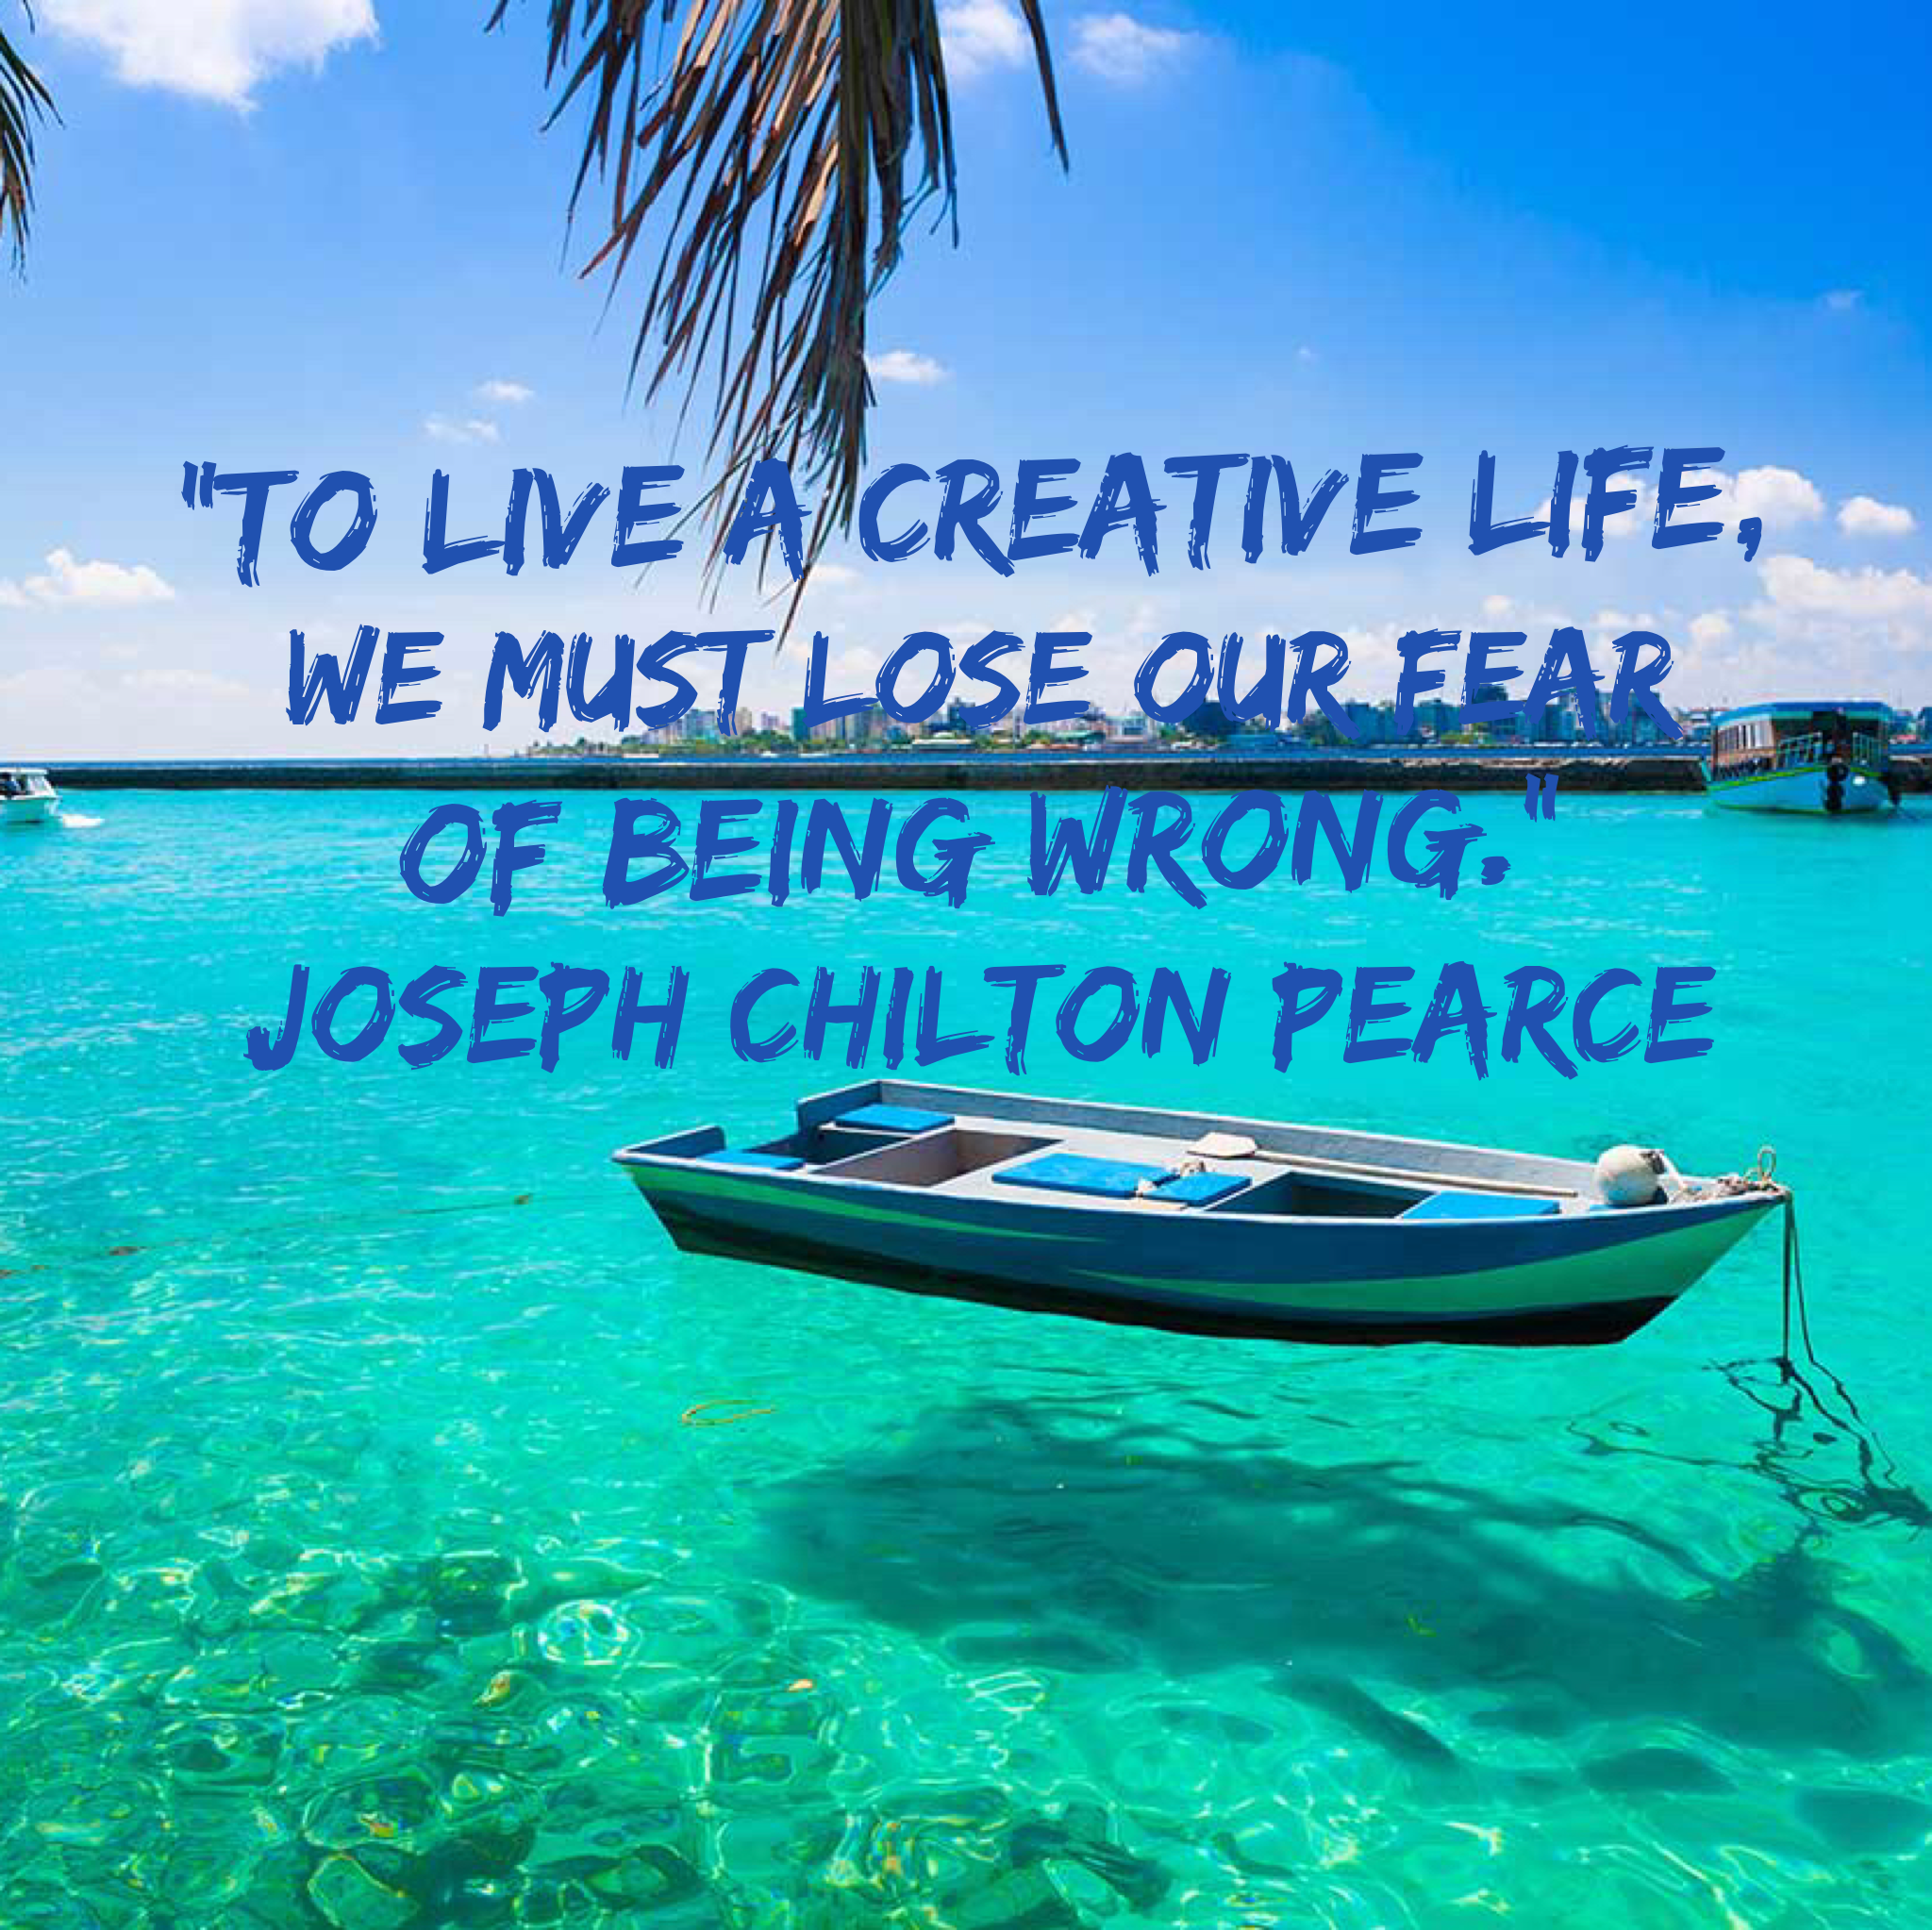 Your action for today is to see if you can do something to tackle one of your fears. #quoteoftheday #josephchiltonpearce #fear #creative #Have2Travel #Have2Cruise